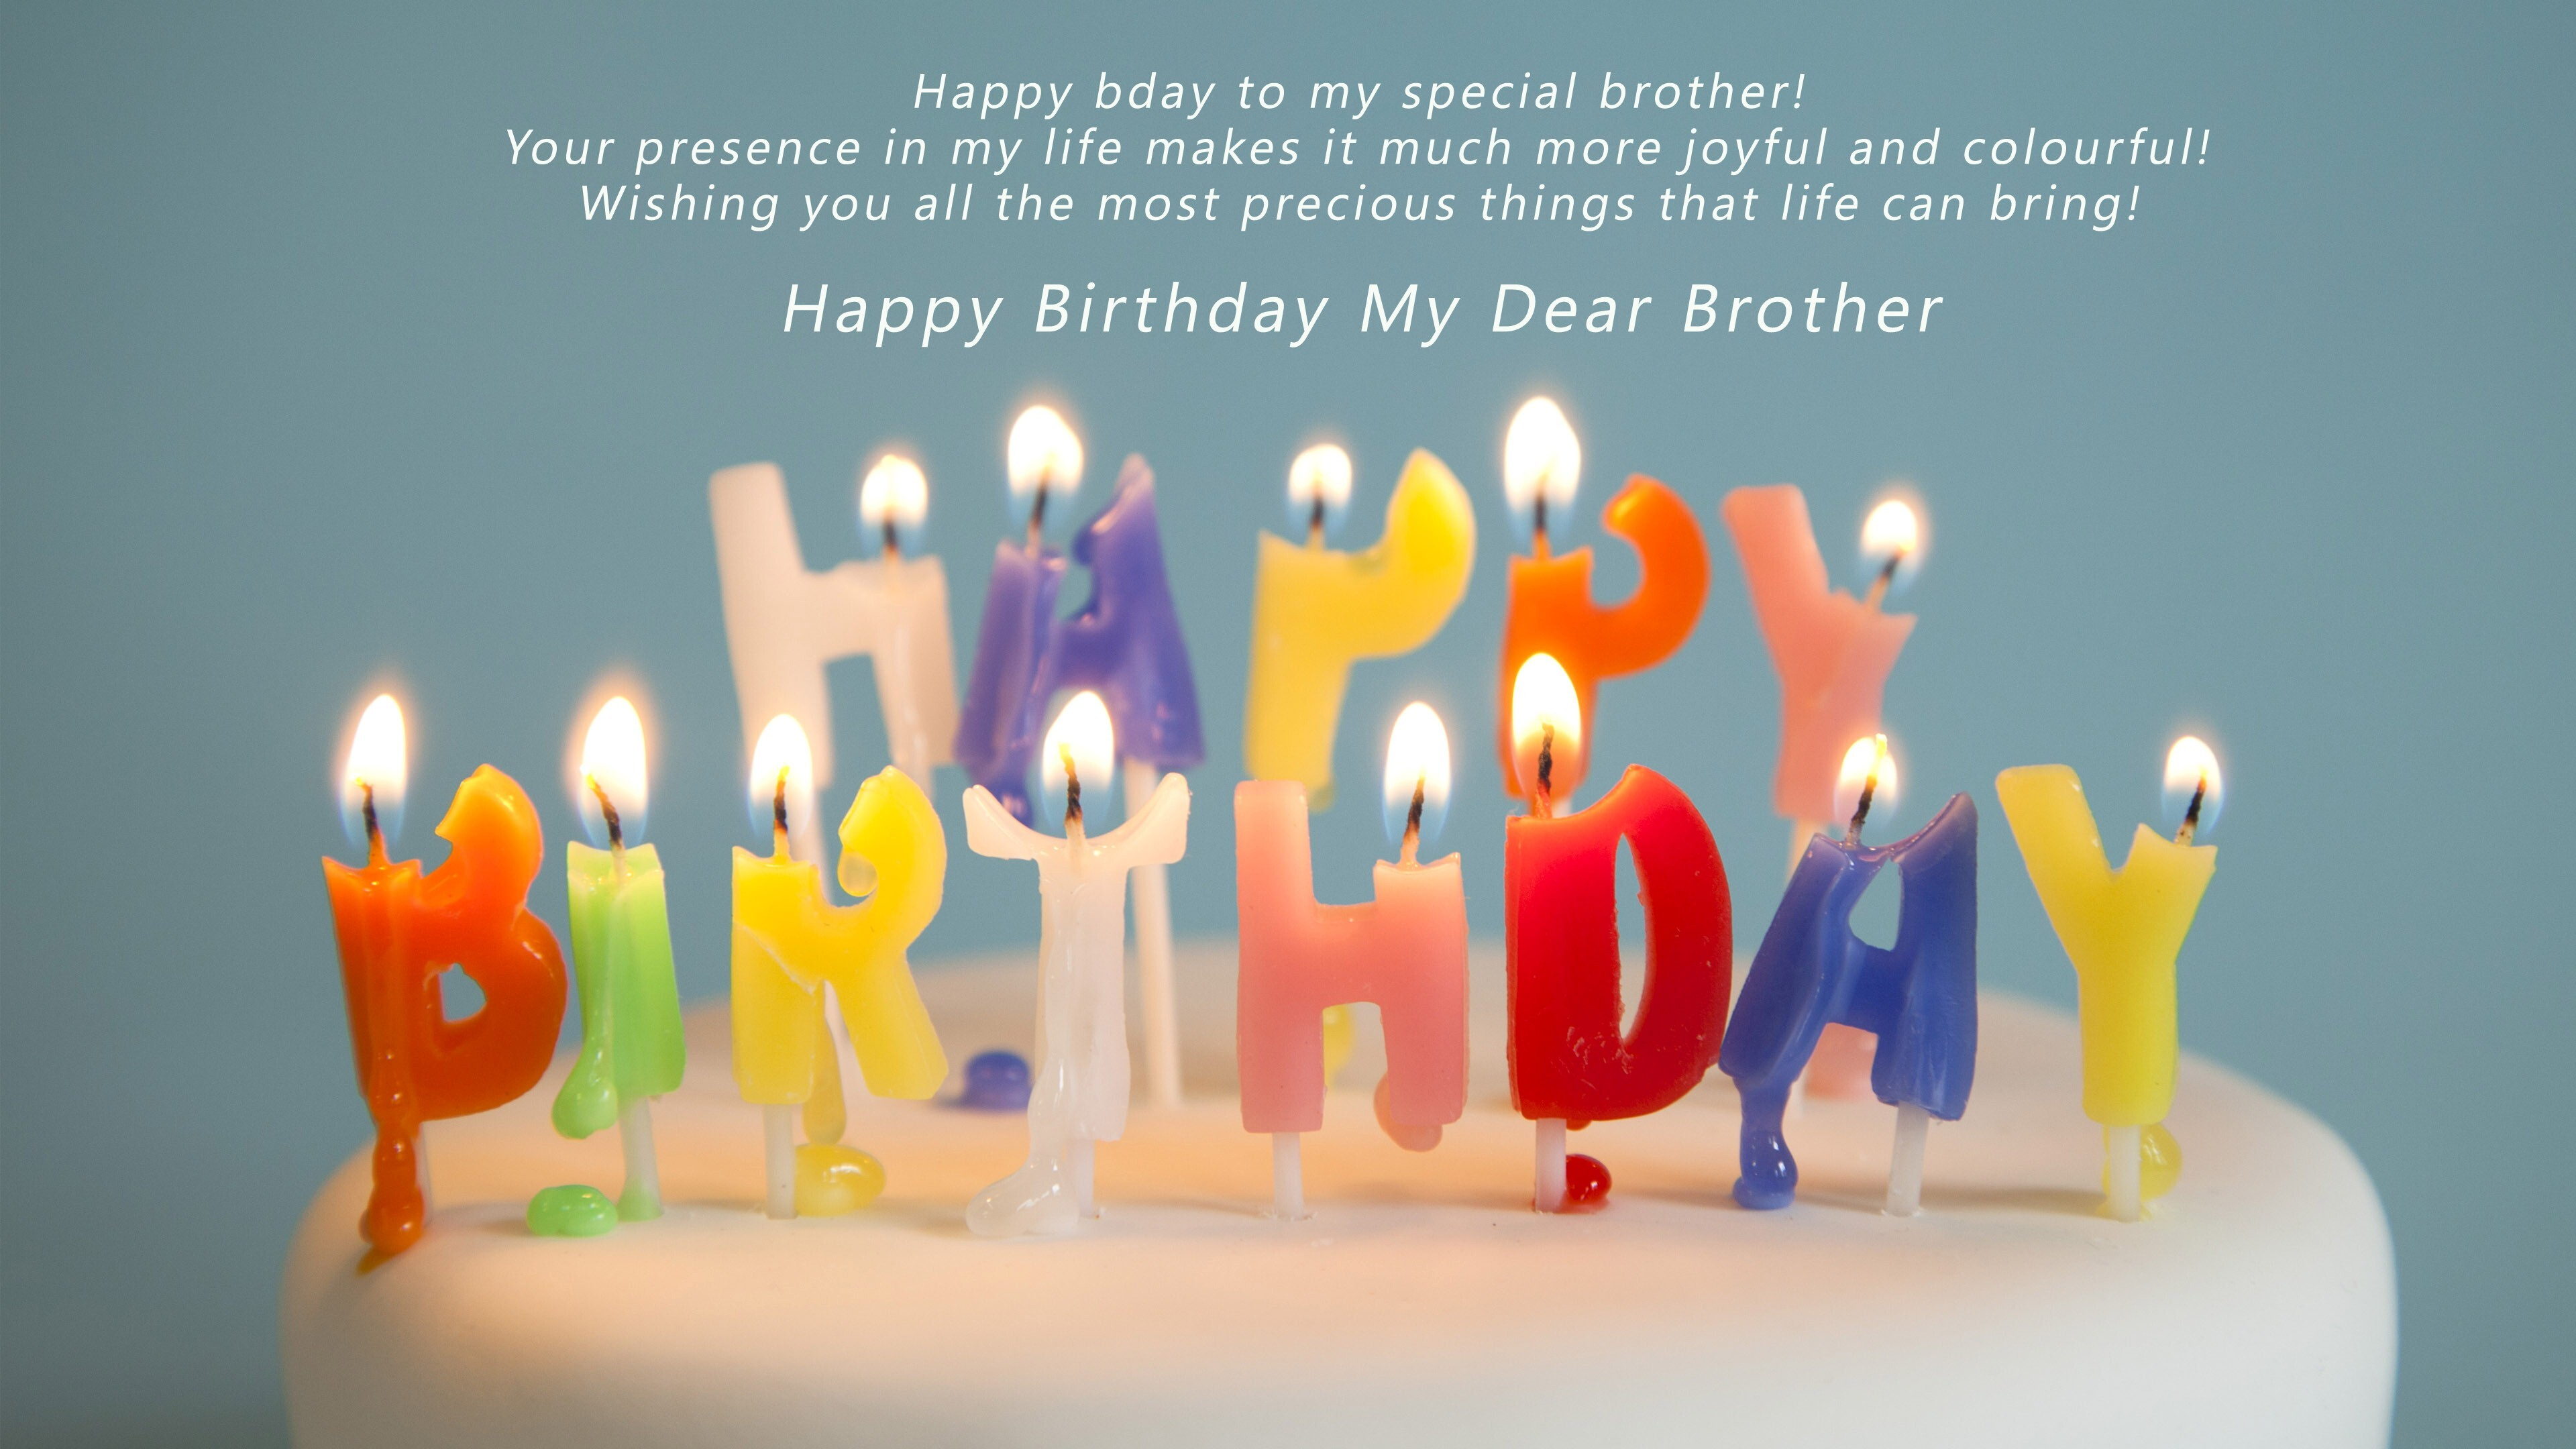 Wish You Happy Birthday My Dear Brother Hd Wallpapers